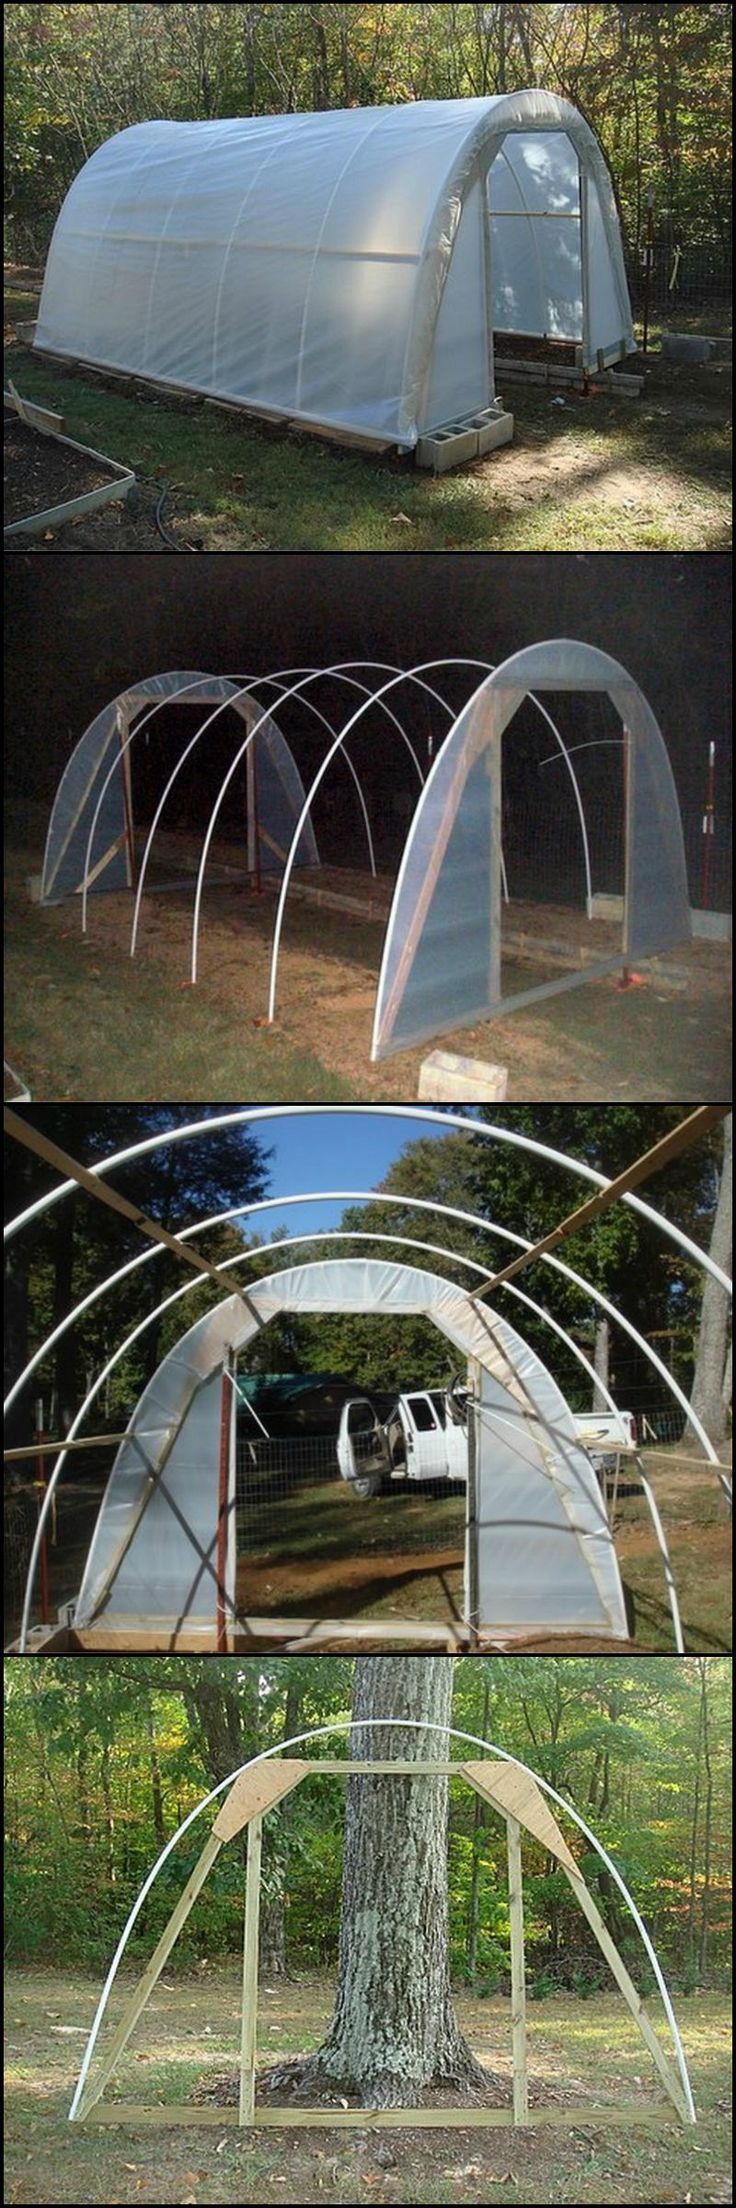 How To Build An Inexpensive Greenhouse http://theownerbuildernetwork.co/o5bi Pssst! Want a cheap greenhouse? How does $50 sound? If you want a greenhouse but don't want to spend a lot with buying one, build your own!